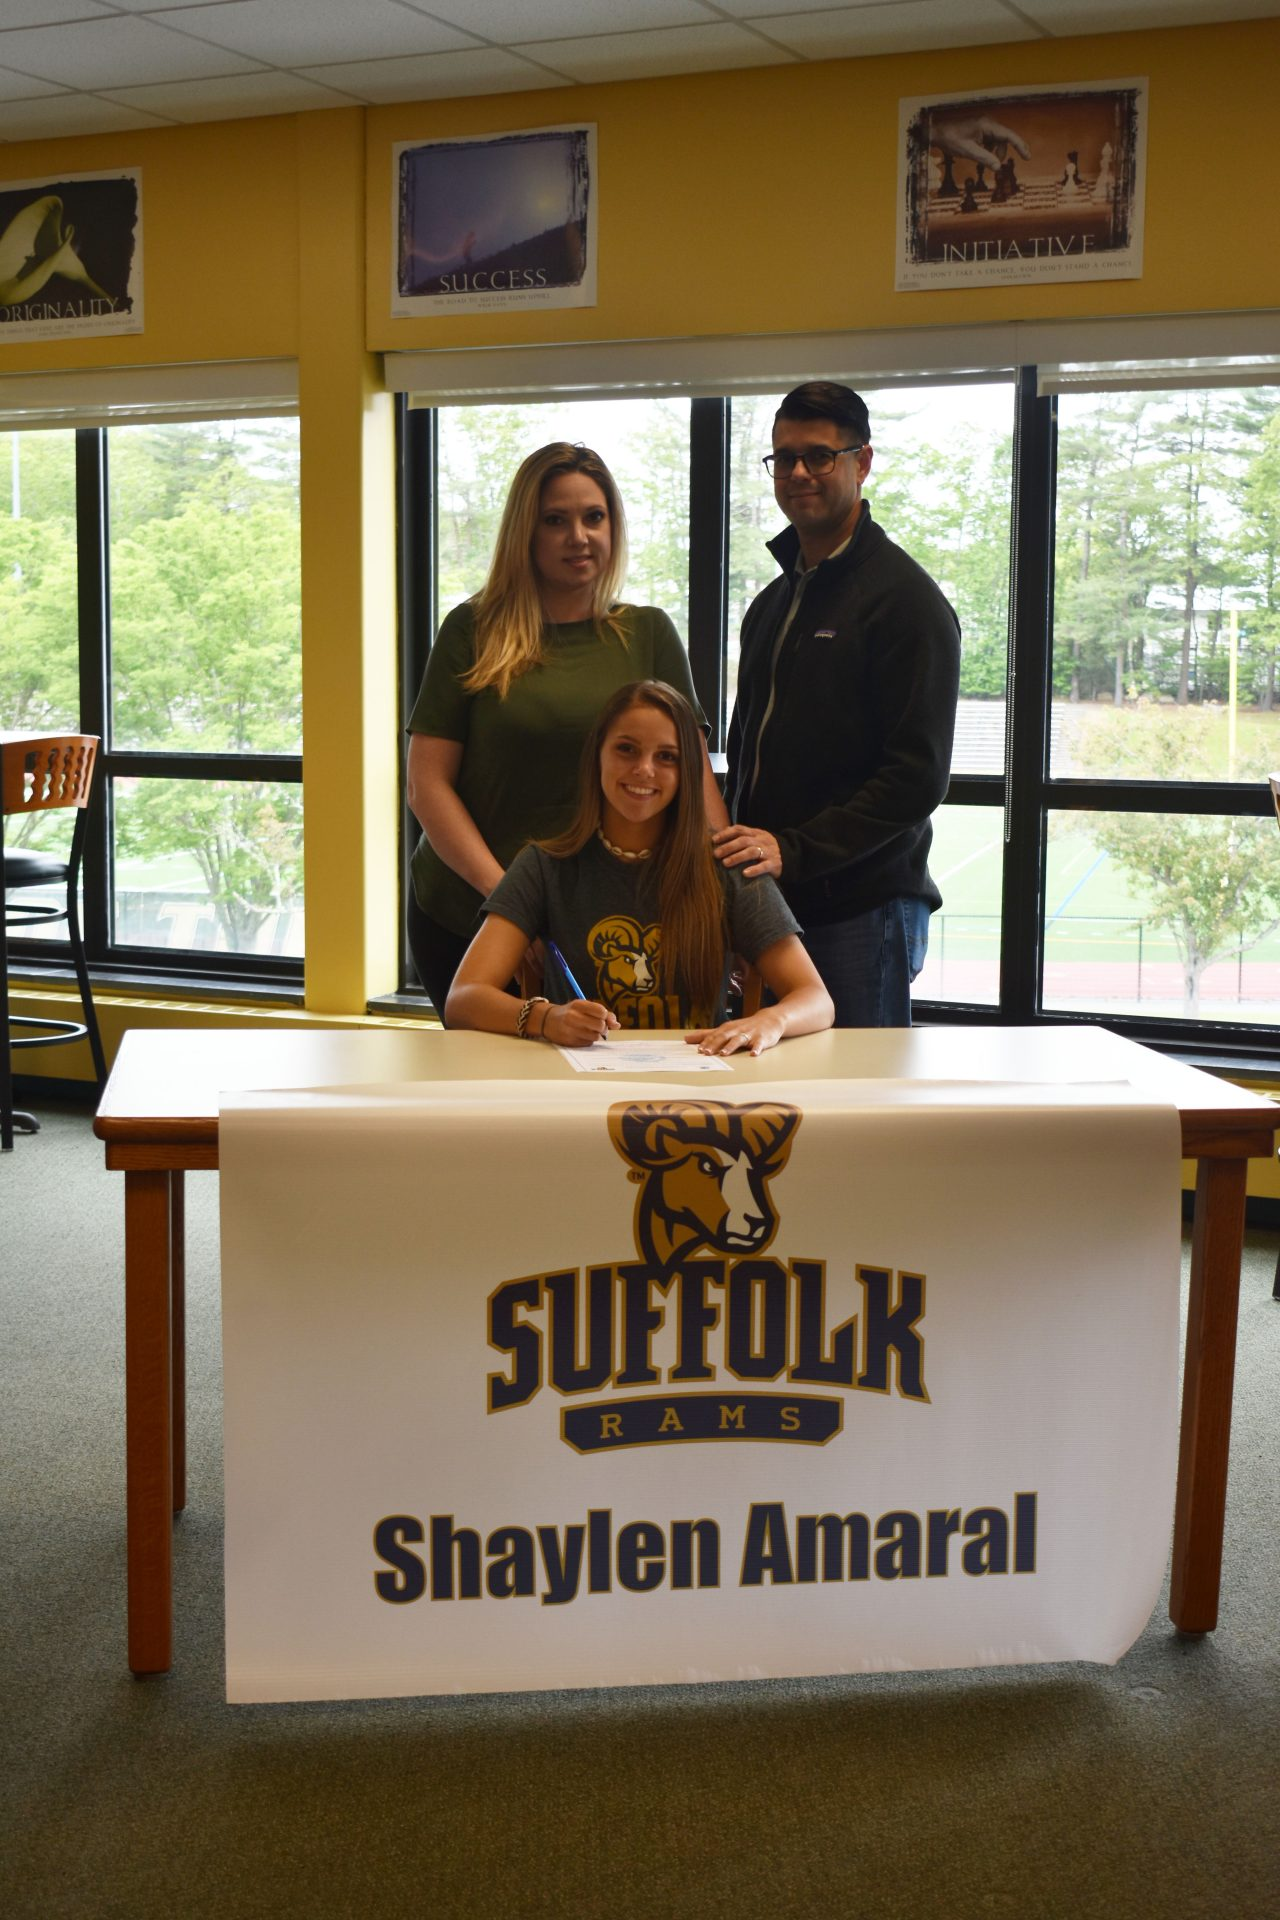 Shaylen Athletic Signing with parents